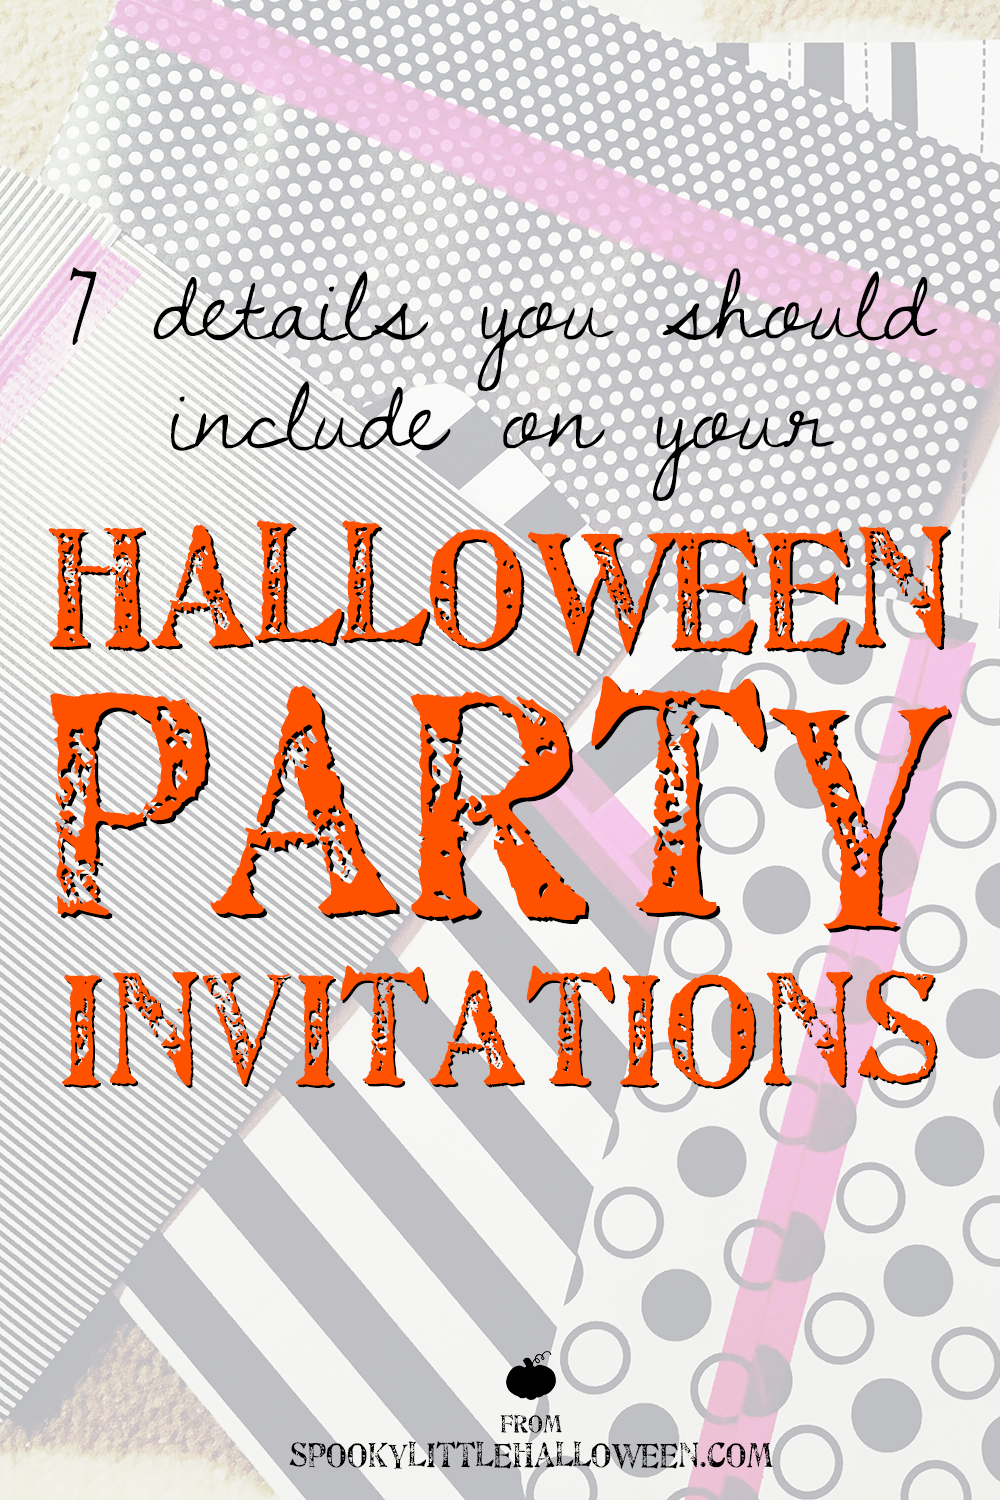 7 Details You Should Include on Your Halloween Party Invitations ...